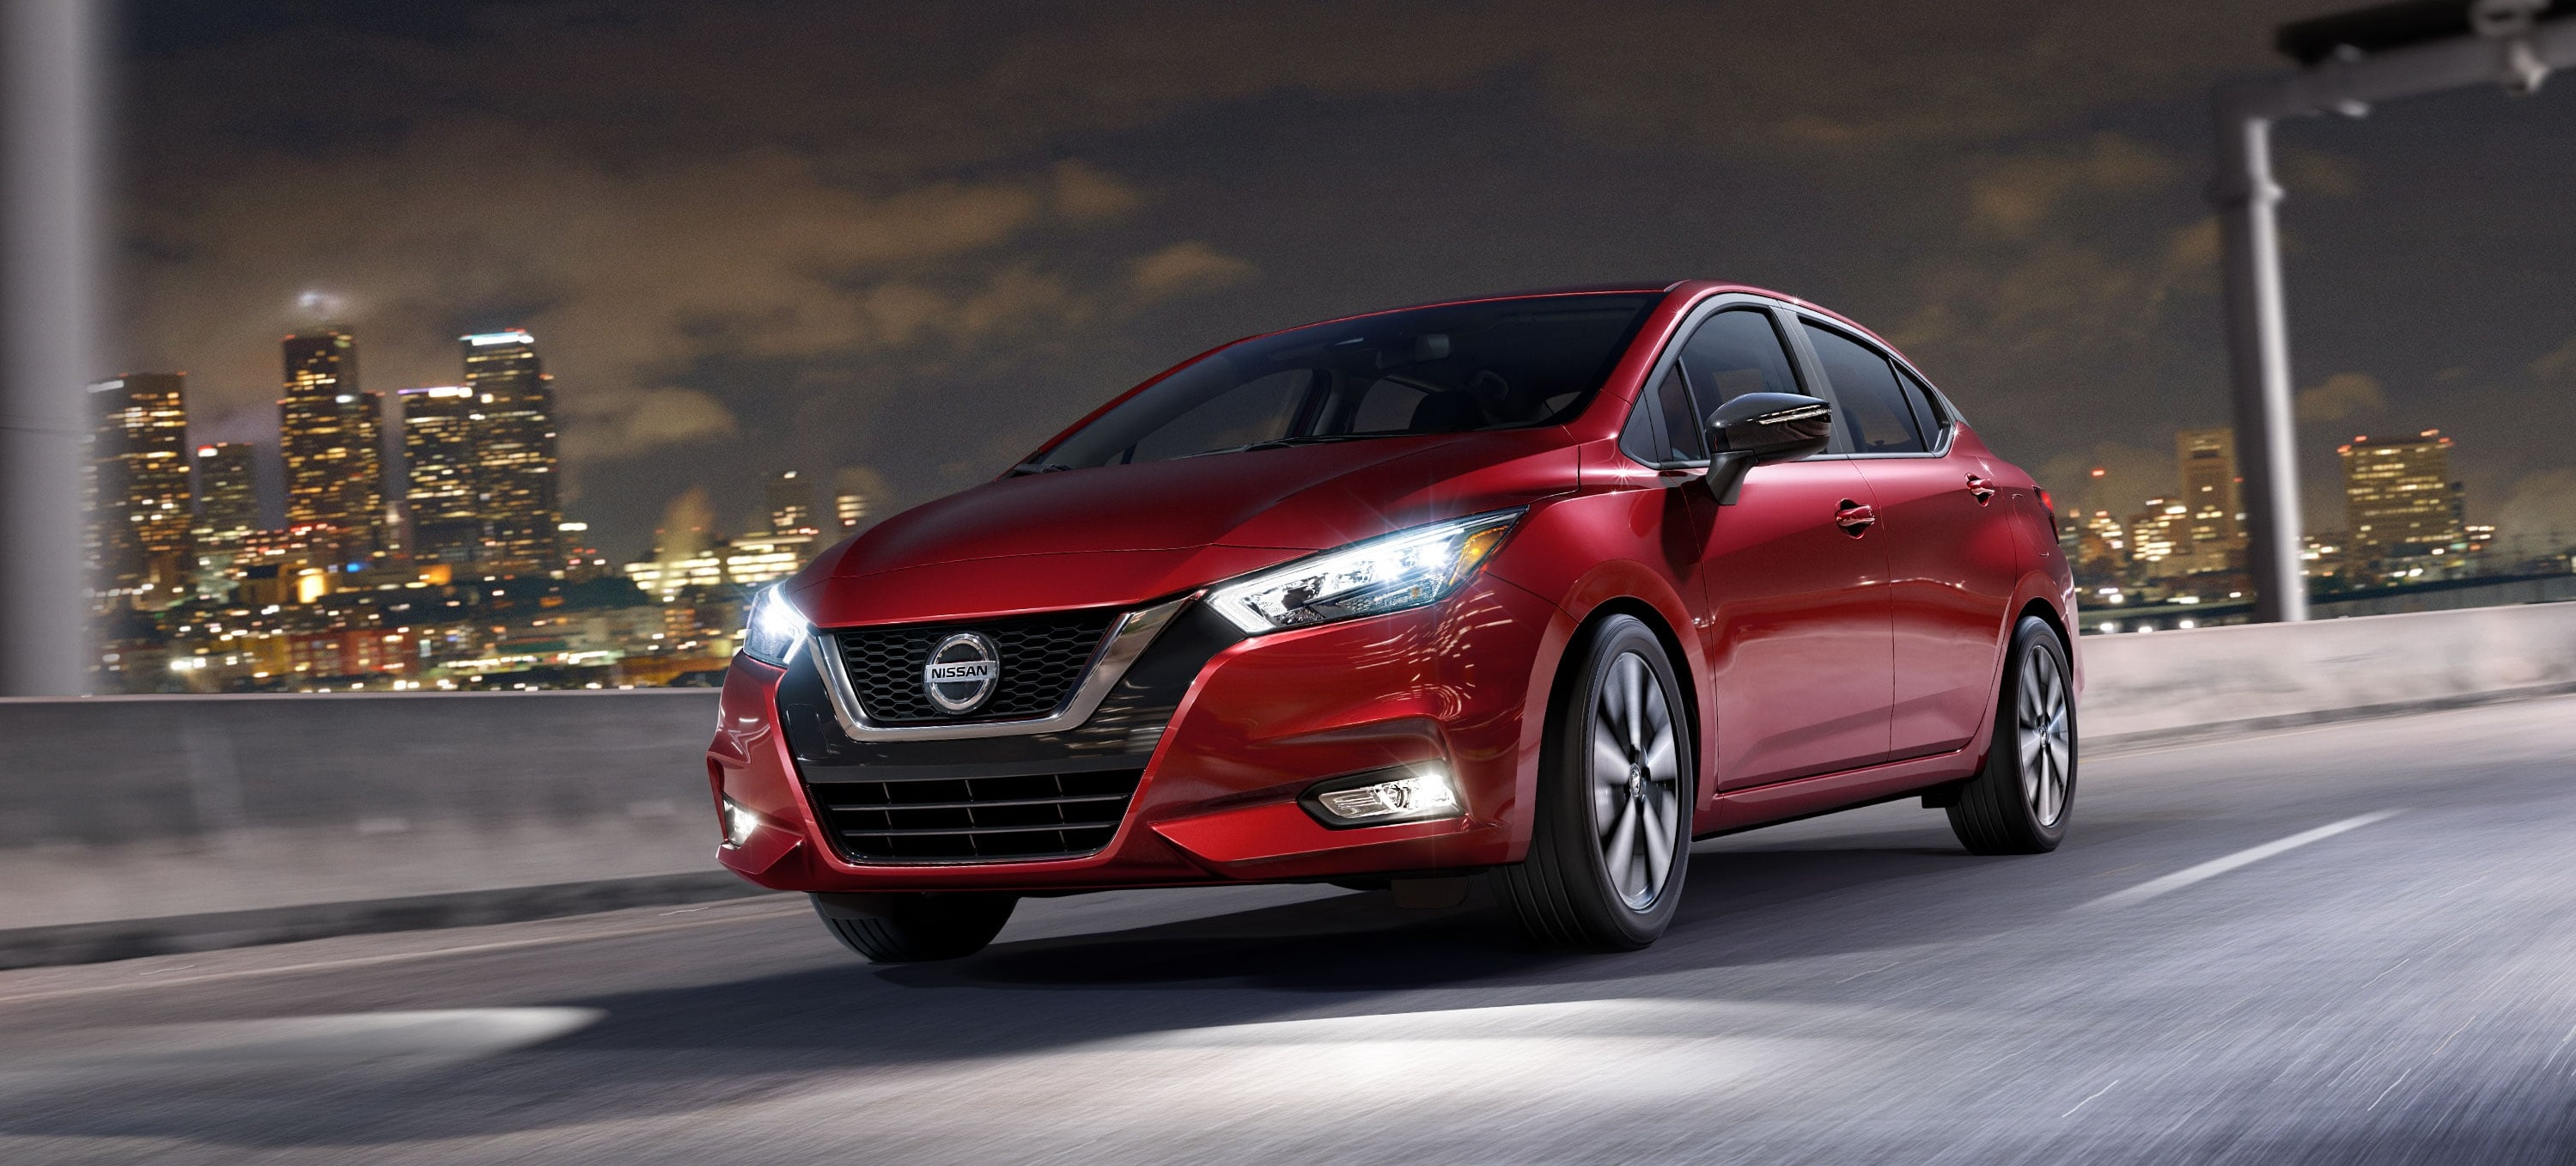 Nissan Dealership Serving Clermont Fl Jenkins Nissan Of Leesburg Set up your next service appointment easily by using our online scheduler. nissan dealership serving clermont fl